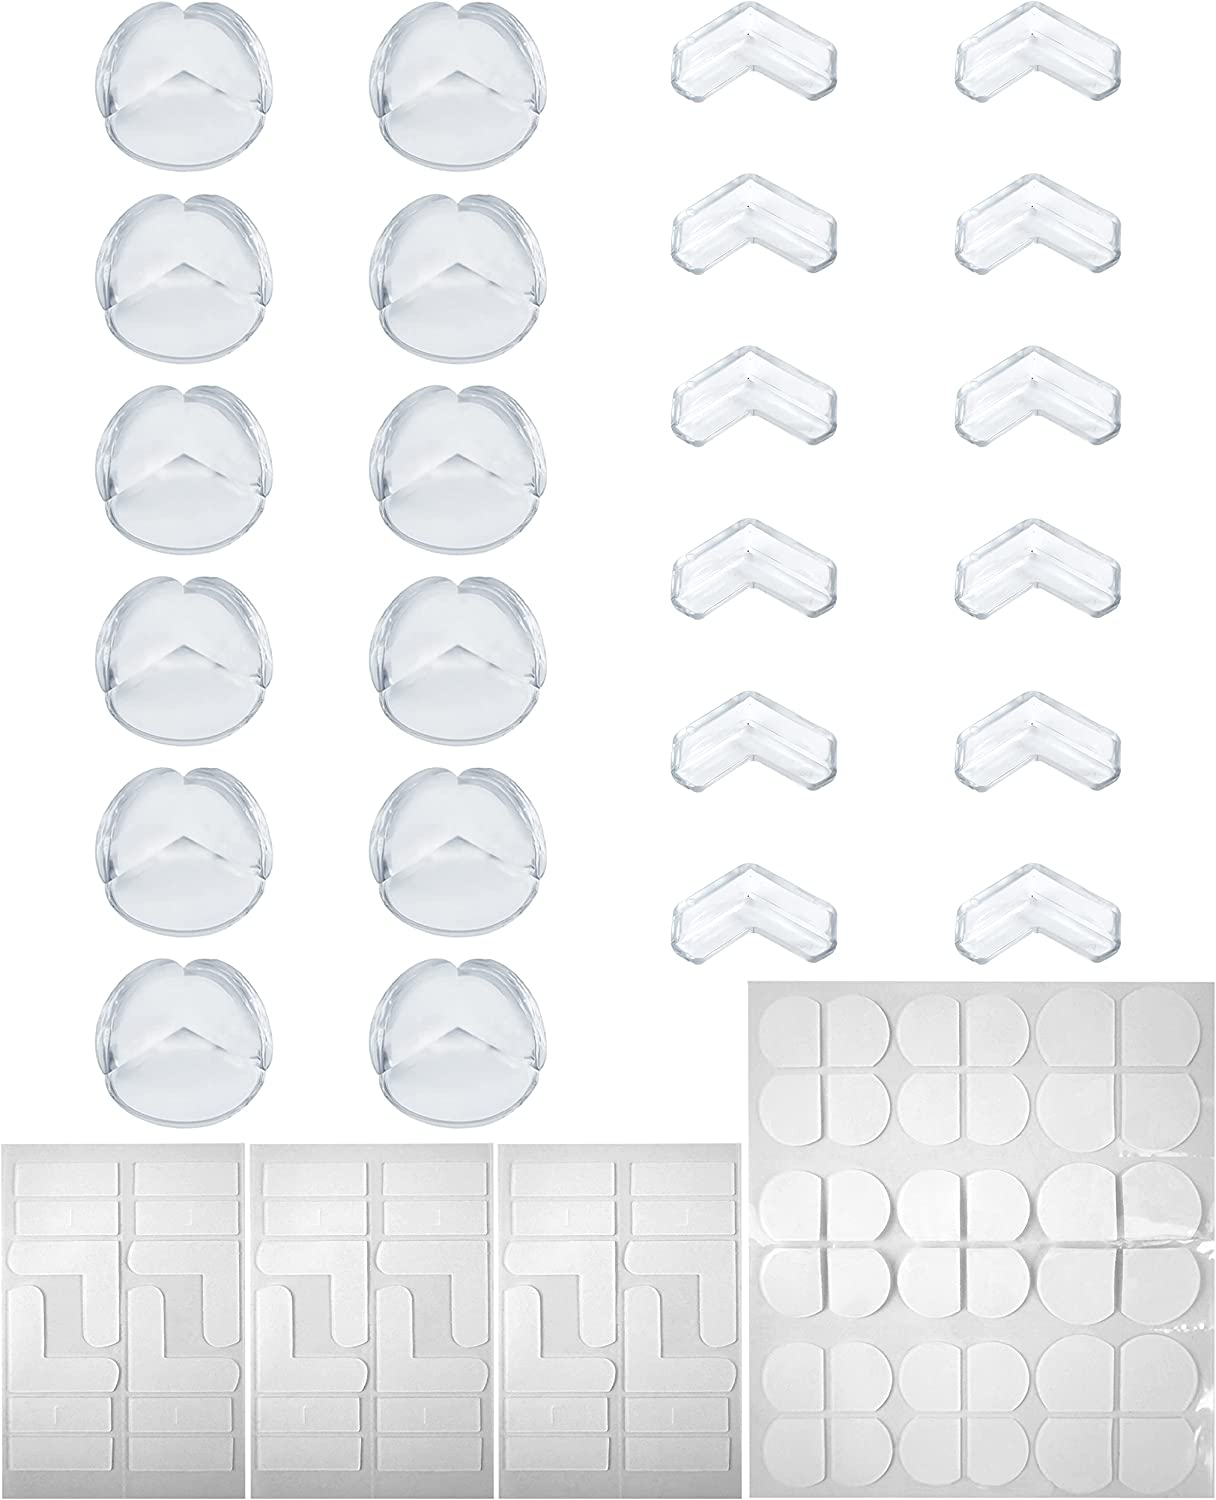 Table Corner Protector Baby Safety, 24 Pcs, Includes 12 Pcs Thickened L-Shaped Baby Proofing Corner Guards and 12 Pcs Spherical Corner Bumpers for Furniture